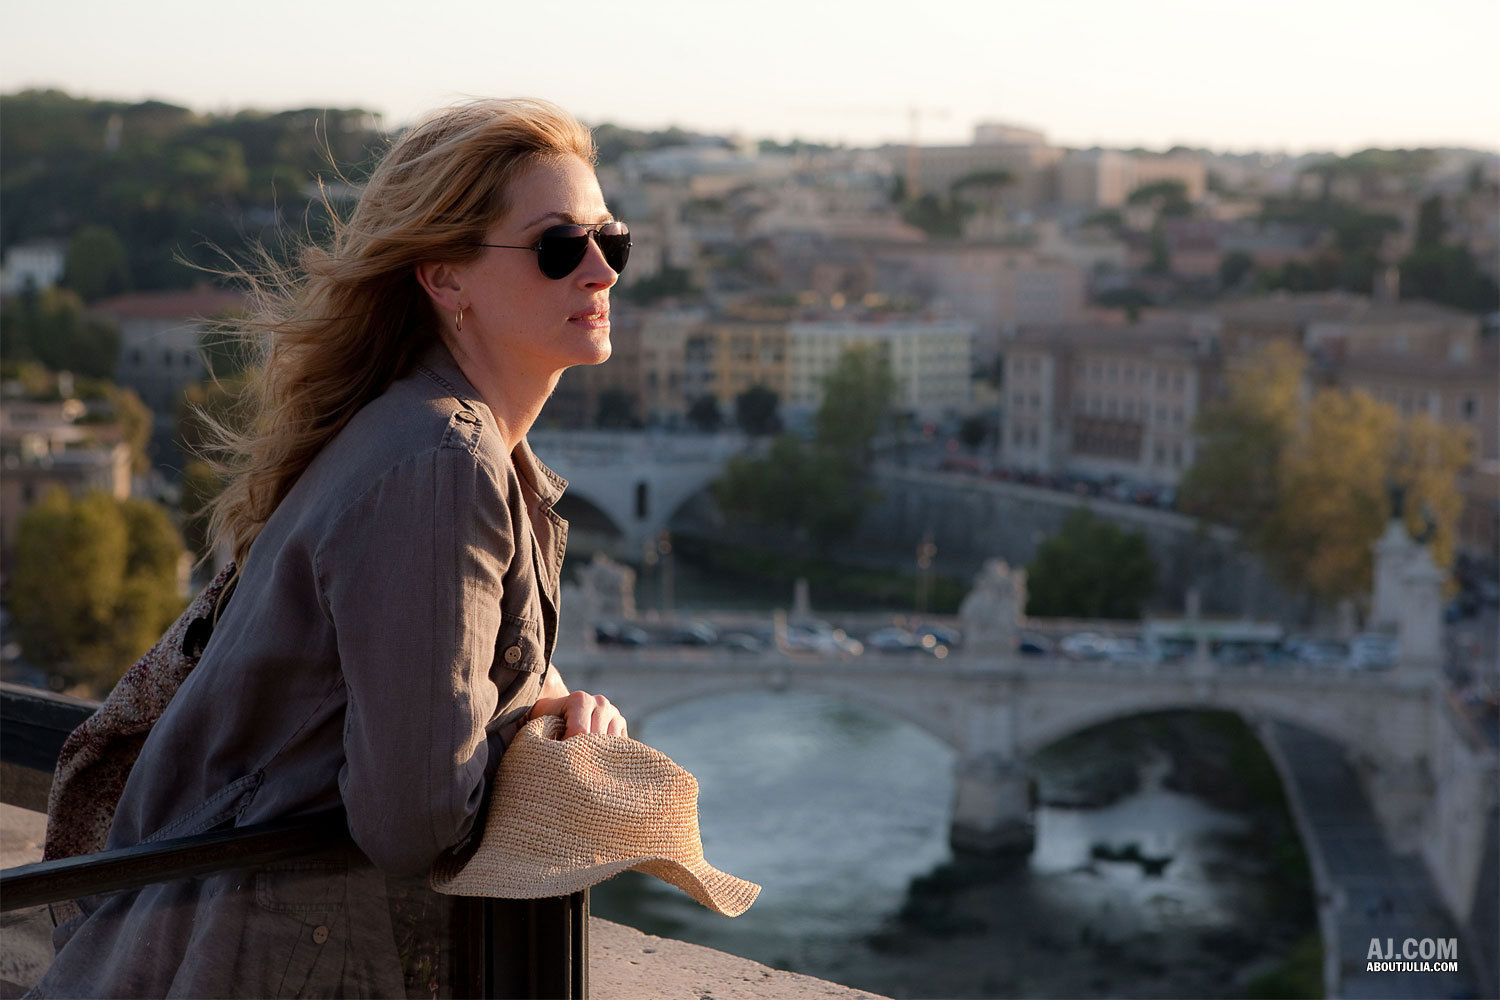 Movie Review - Eat Pray Love - Have Bucks, Will Travel